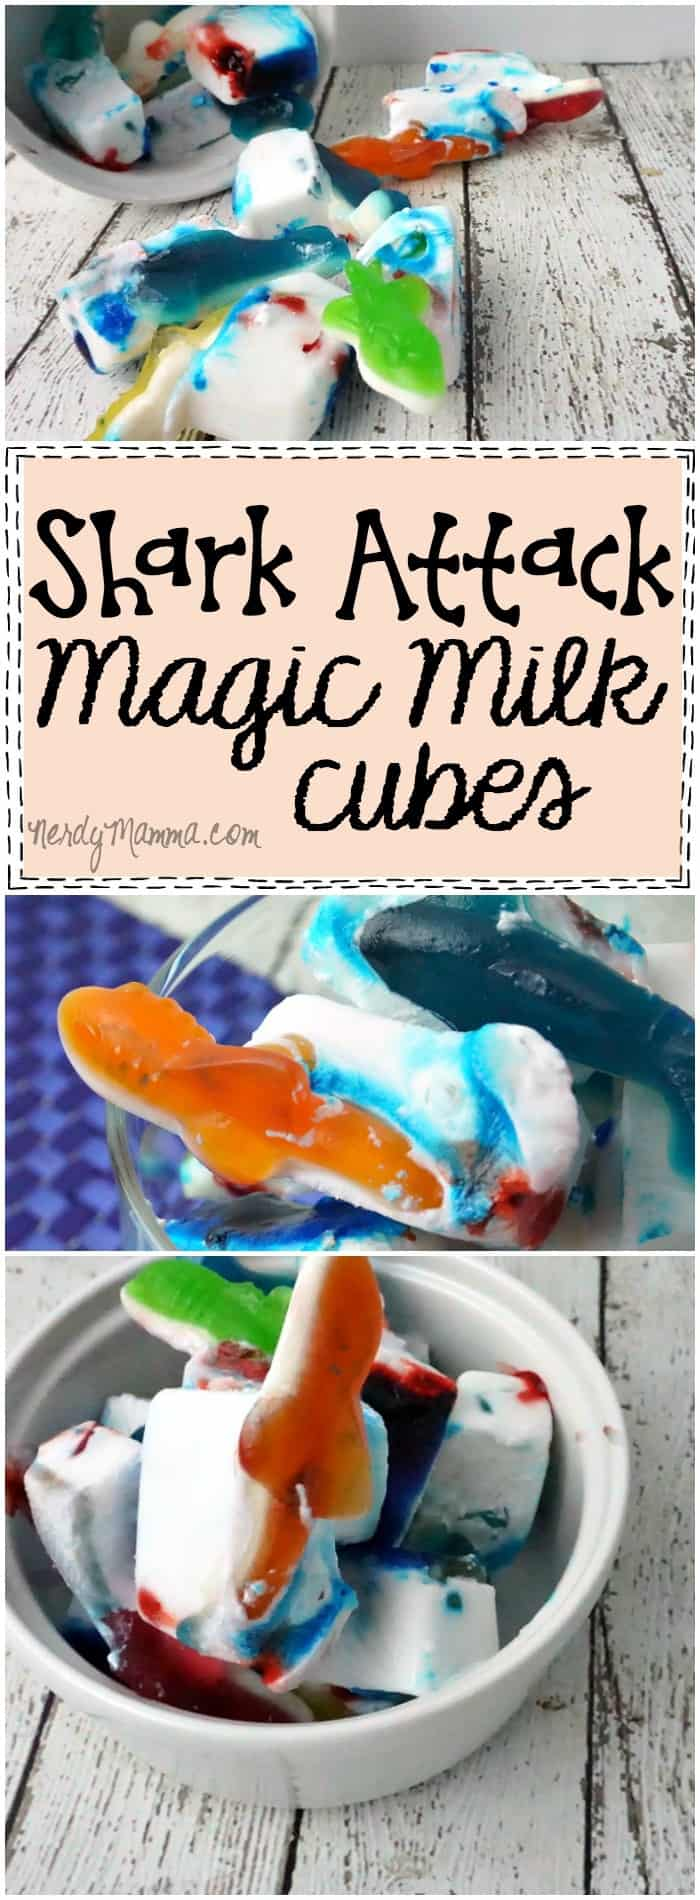 This is such a cute idea! And how easy...I love this recipe for Shark Attack Magic Milk Cubes...and they're really cute...